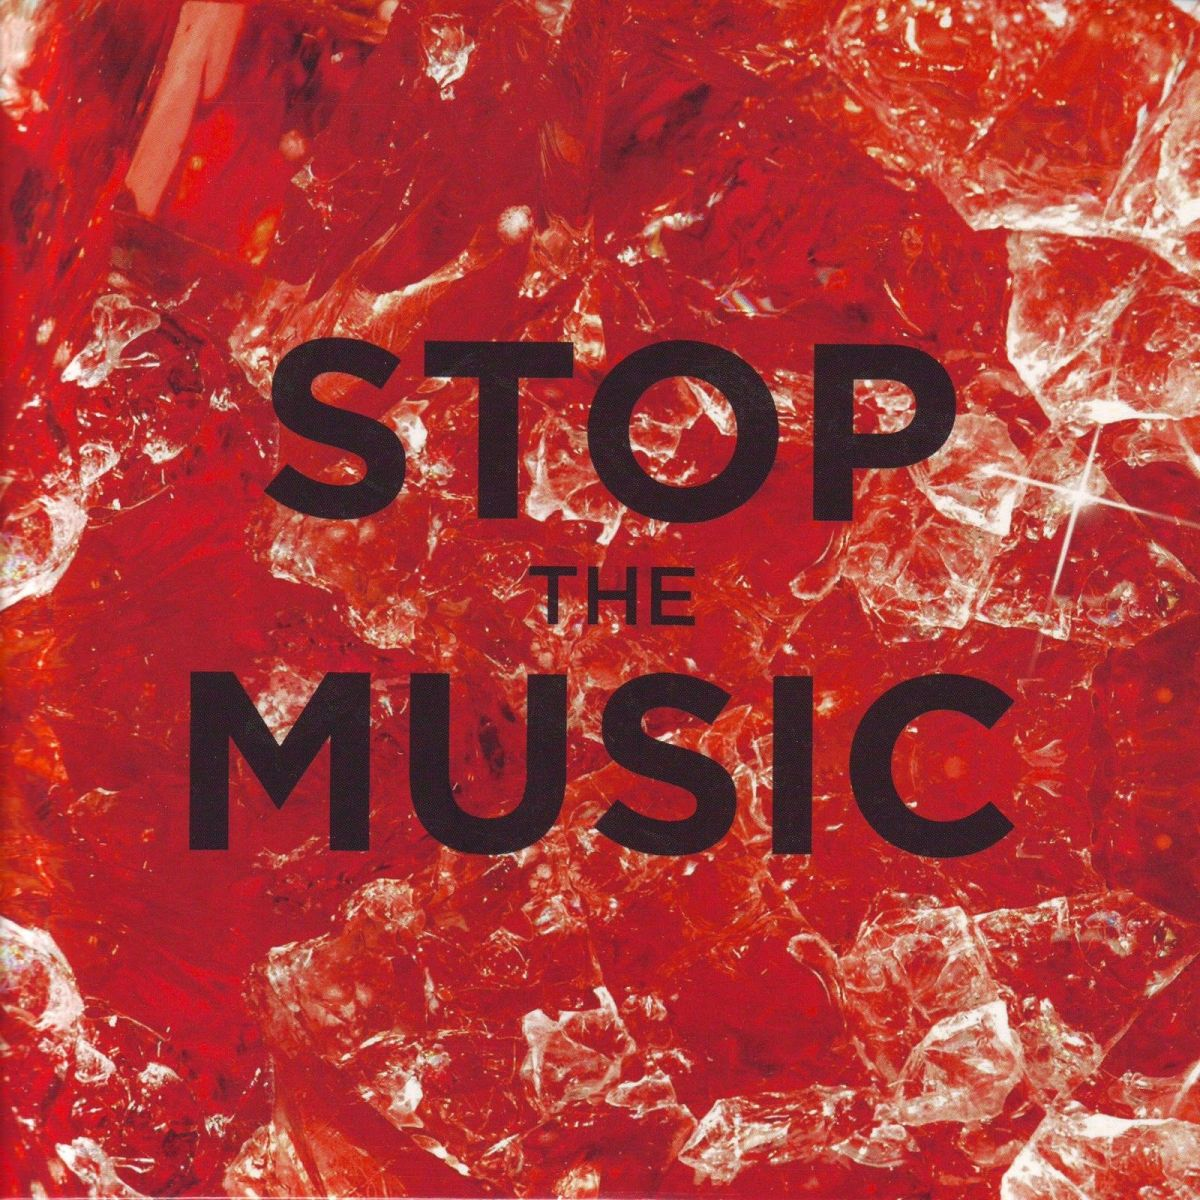 Please STOP the Music